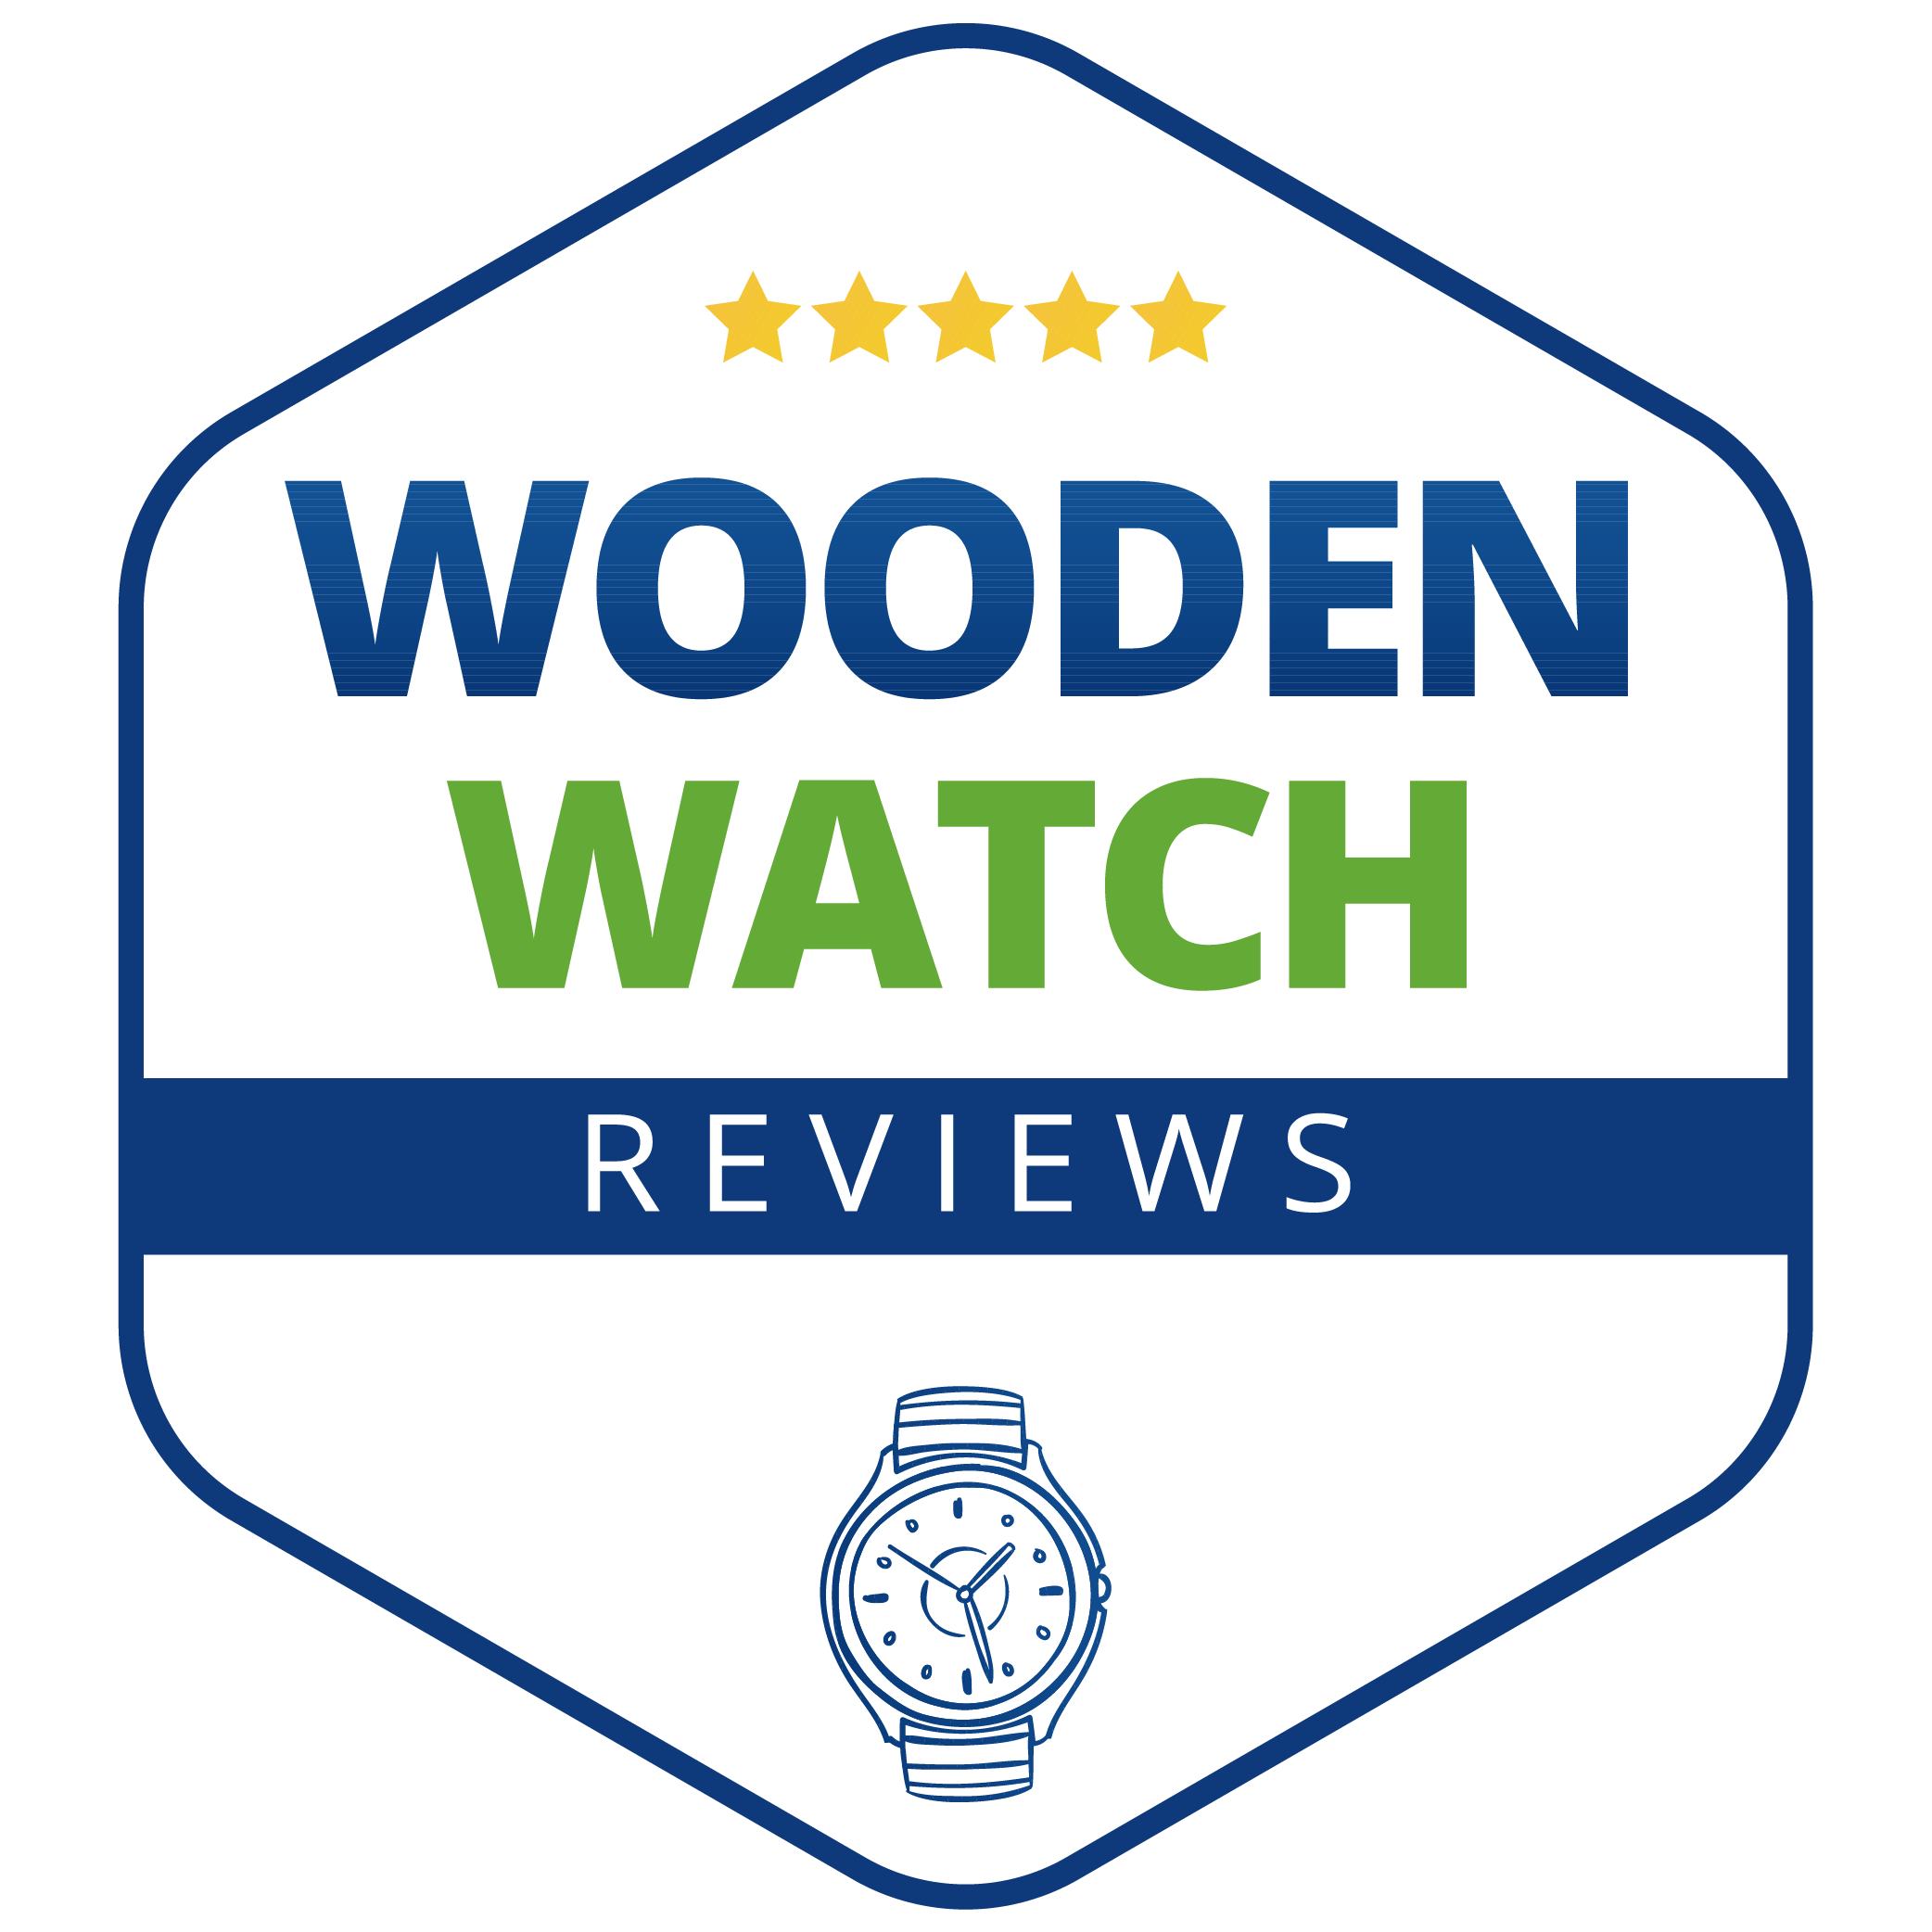 Wooden Watch Reviews